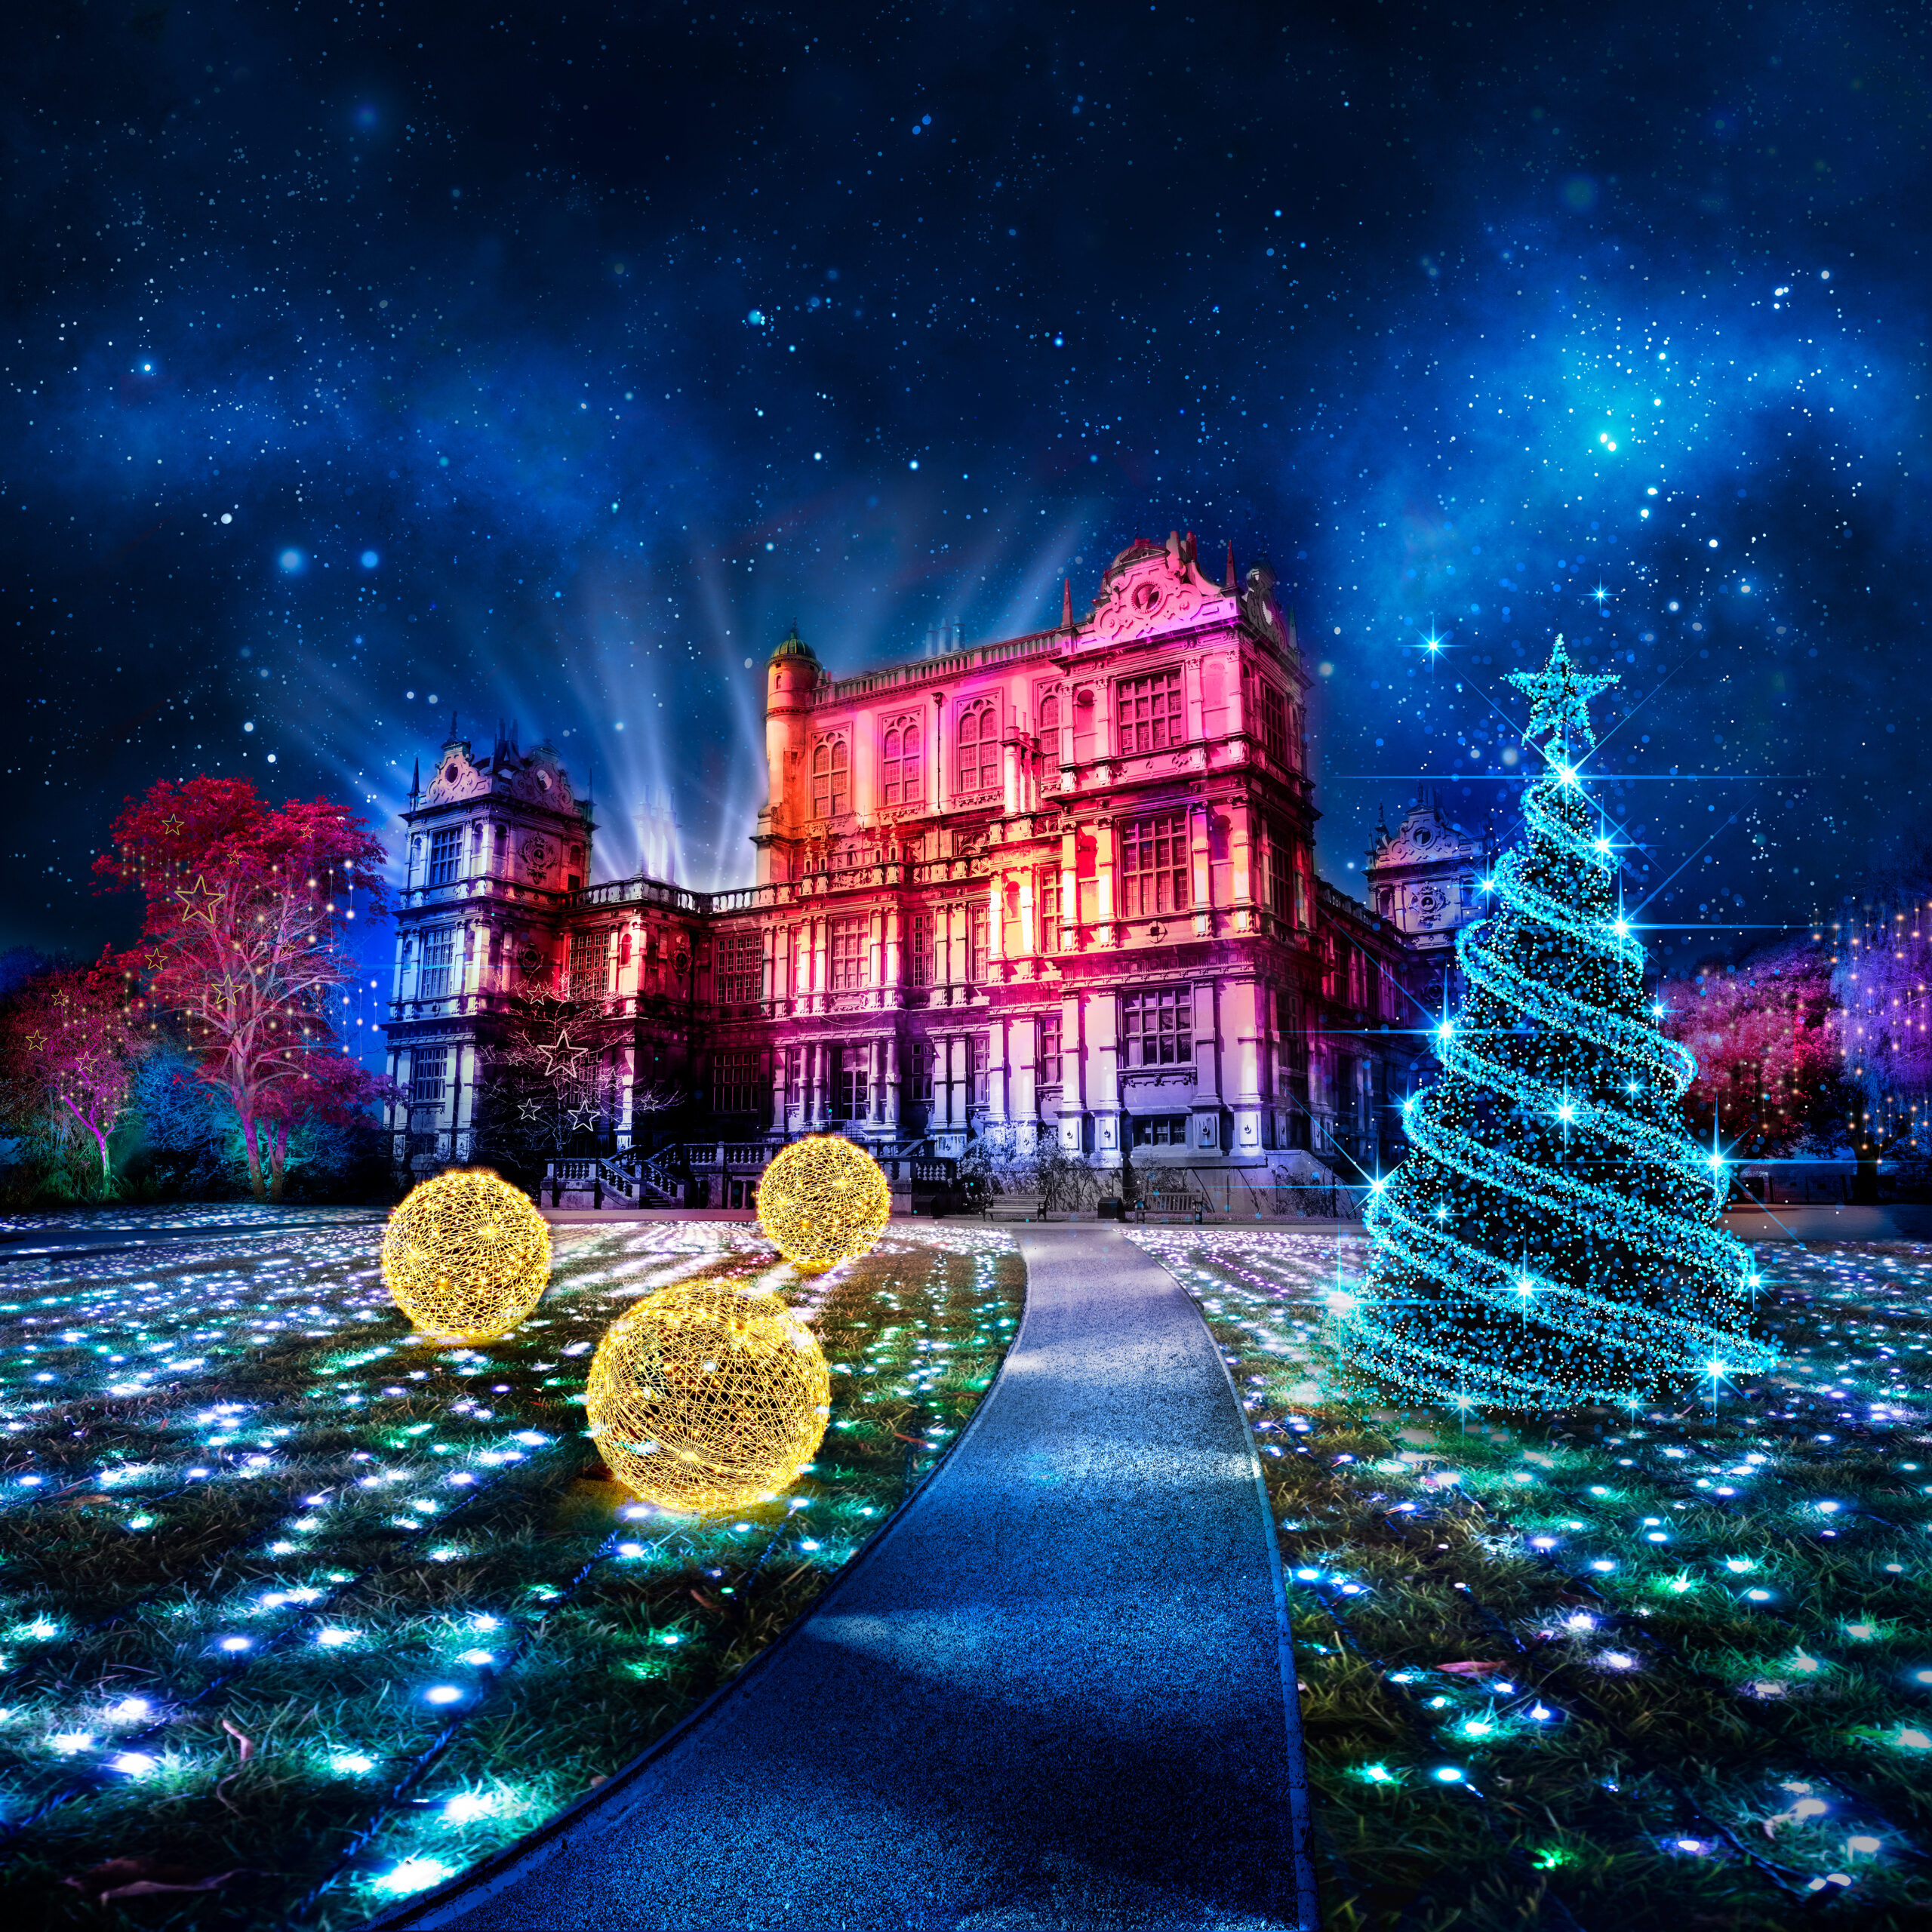 CG_Wollaton_Park_RGB-1-scaled